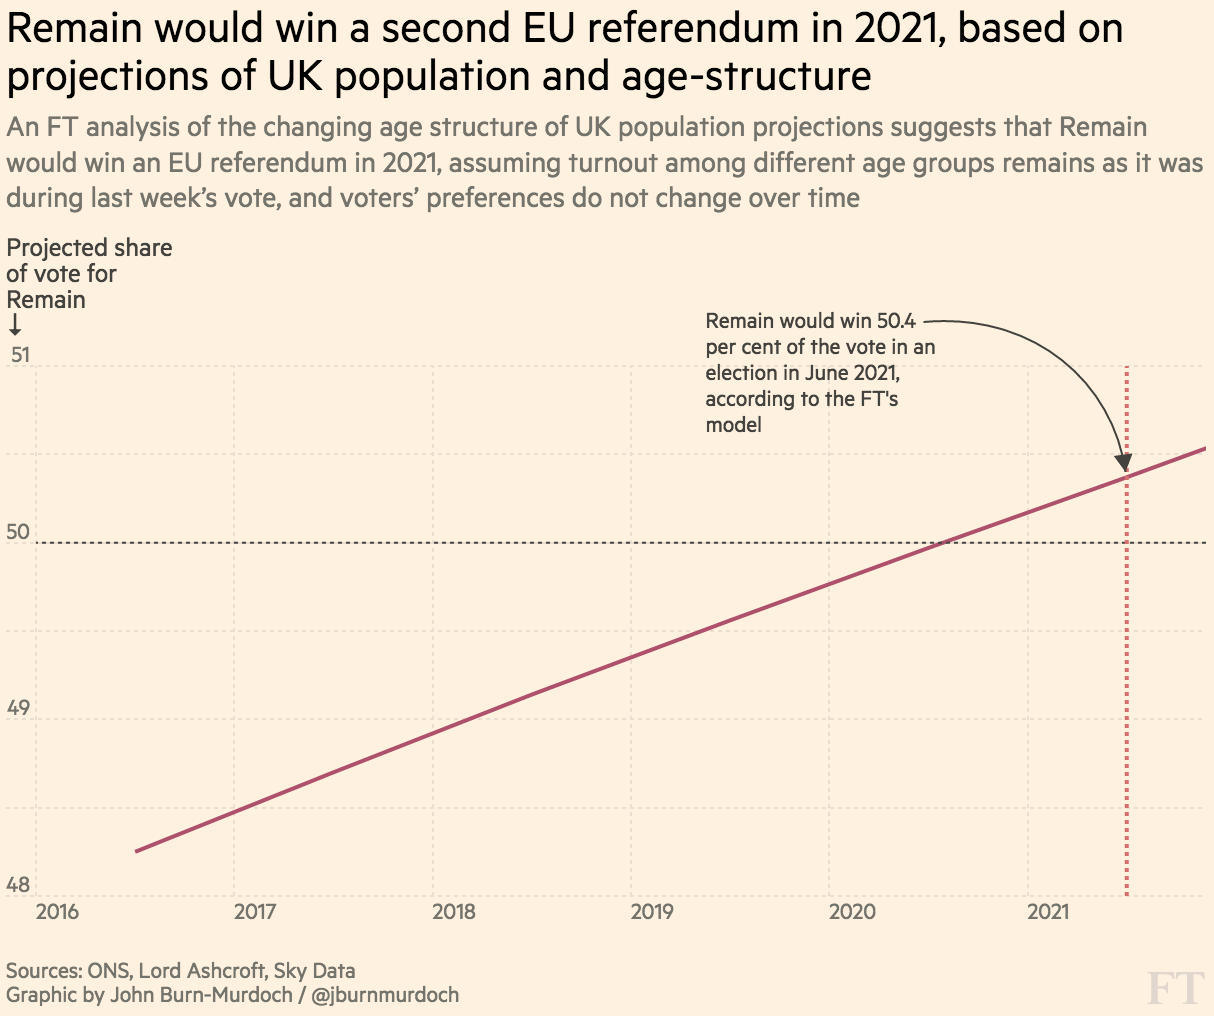 Projected results of future EU referendums, based on modelled population and age-structure. A Remain victory becomes probable in 2021